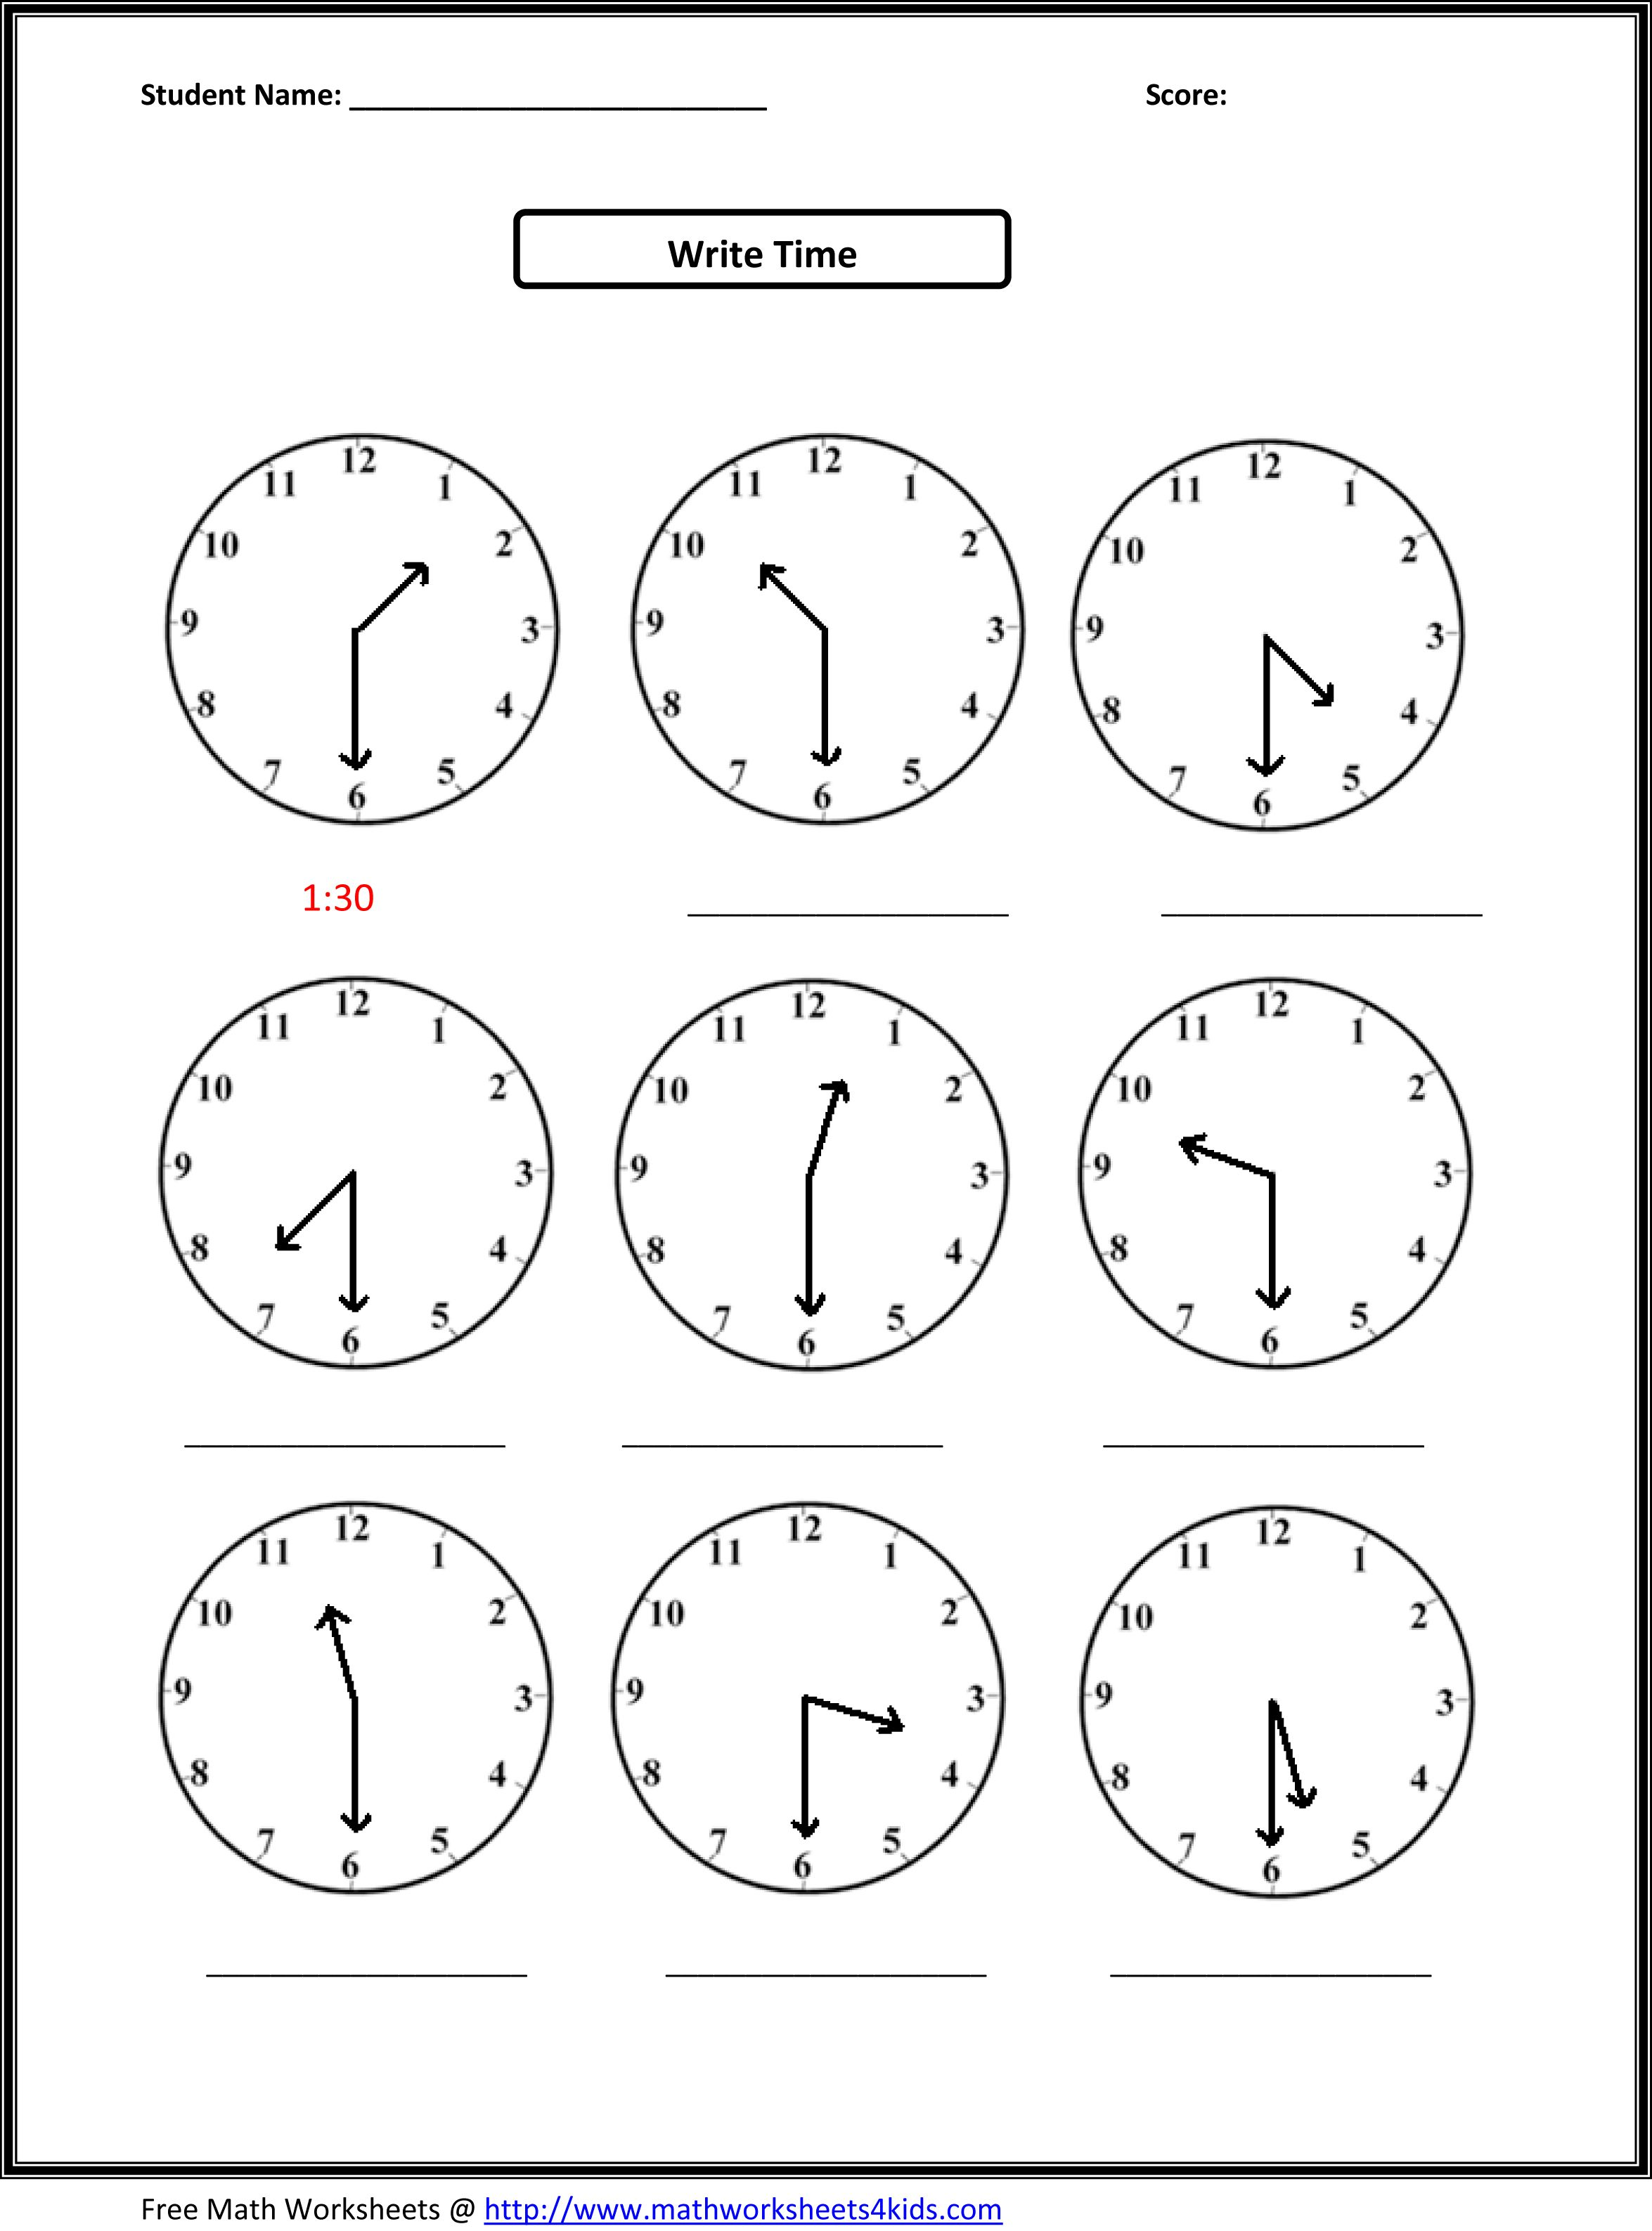 Proatmealus  Inspiring Worksheet On Time For Grade   Reocurent With Fetching Free Printable Telling Time Worksheets Nd Grade  Reocurent With Extraordinary The Carbon Cycle Worksheet Also Percentage Word Problems Worksheet In Addition Prepositions Worksheets And Thermodynamics Worksheet Answers As Well As Nouns And Verbs Worksheet Additionally Reading Comprehension Worksheets For St Grade From Reocurentcom With Proatmealus  Fetching Worksheet On Time For Grade   Reocurent With Extraordinary Free Printable Telling Time Worksheets Nd Grade  Reocurent And Inspiring The Carbon Cycle Worksheet Also Percentage Word Problems Worksheet In Addition Prepositions Worksheets From Reocurentcom